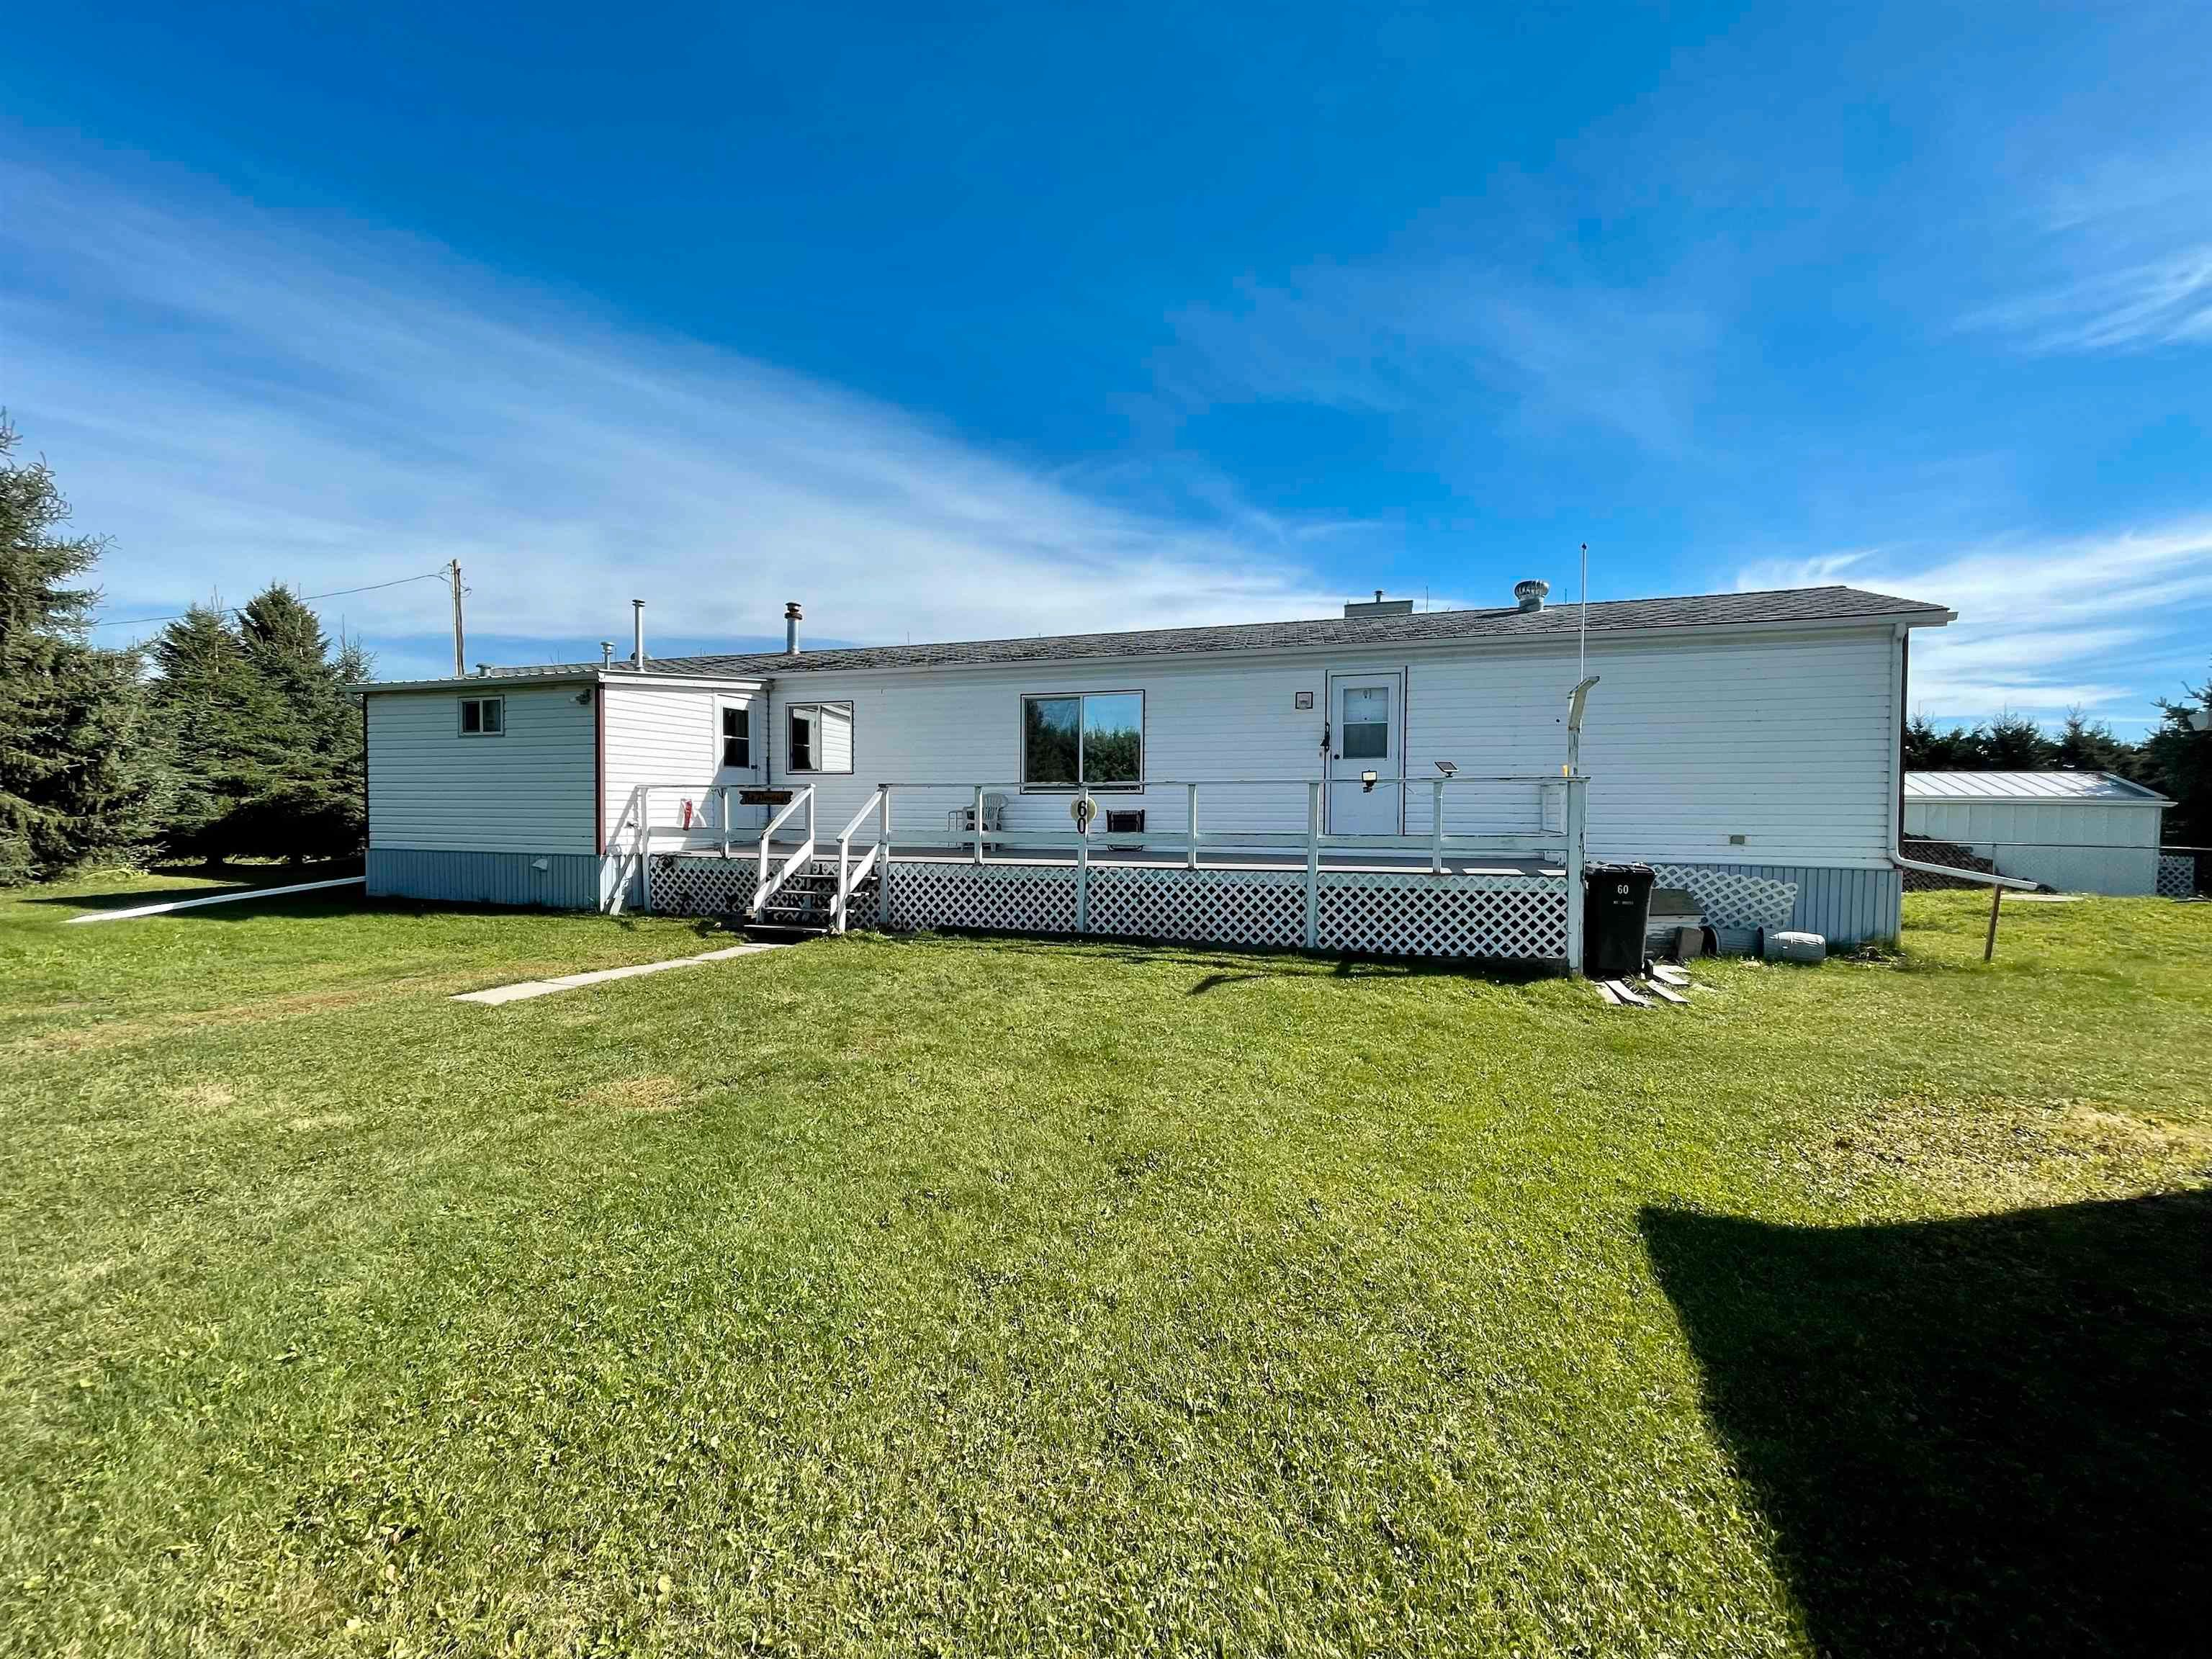 Main Photo: 60 Grandivew Heights: Rural Wetaskiwin County Manufactured Home for sale : MLS®# E4262994